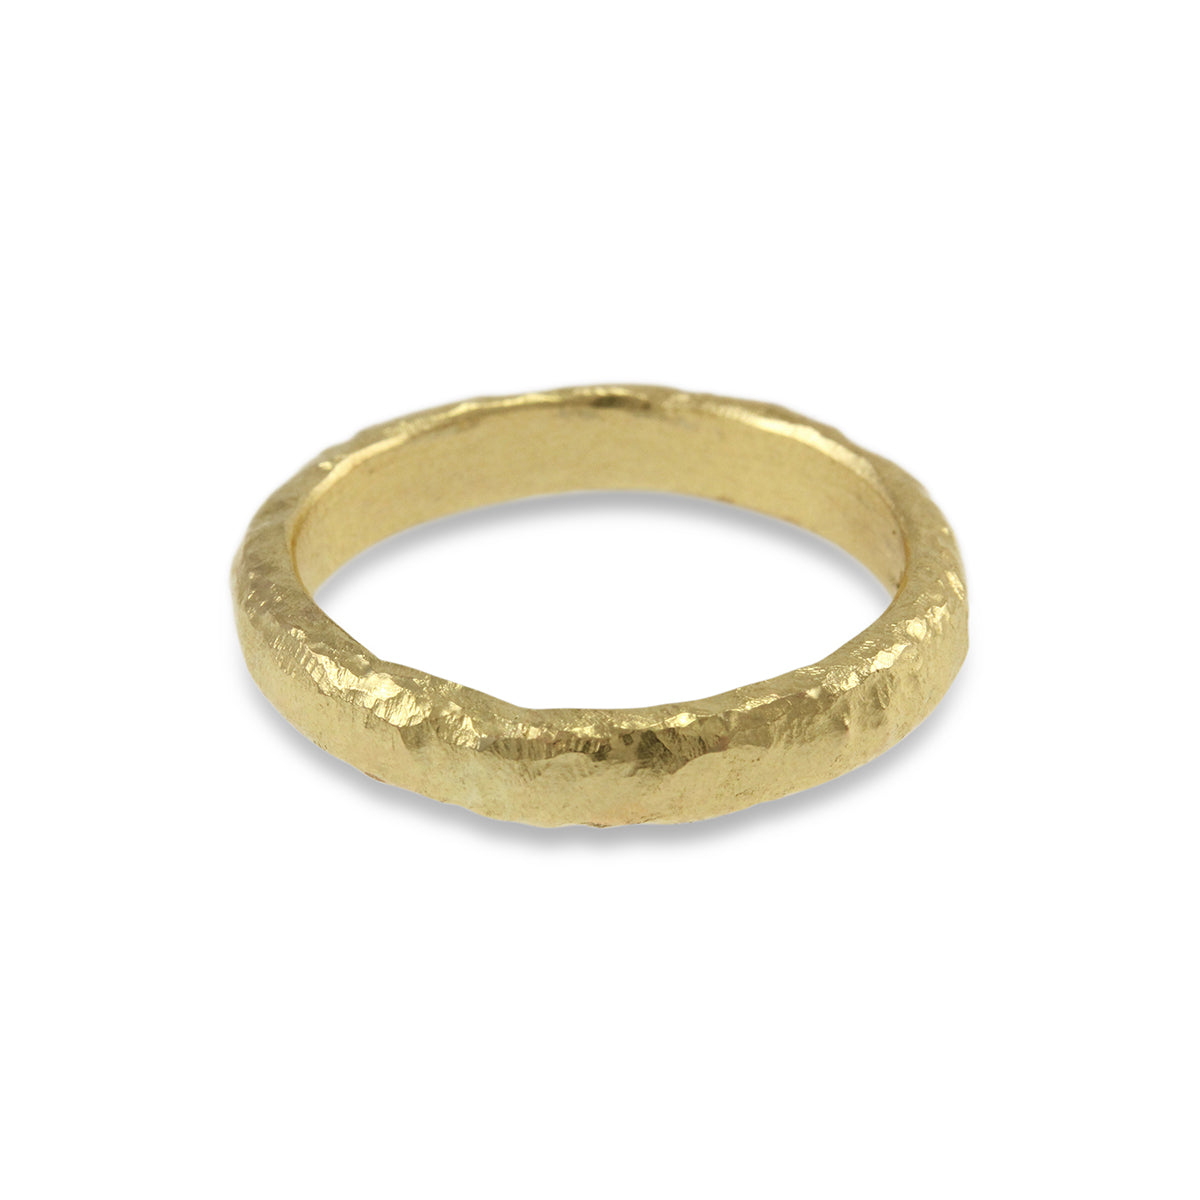 Copy of Handcrafted 9ct yellow gold ring made in London - Paul Magen